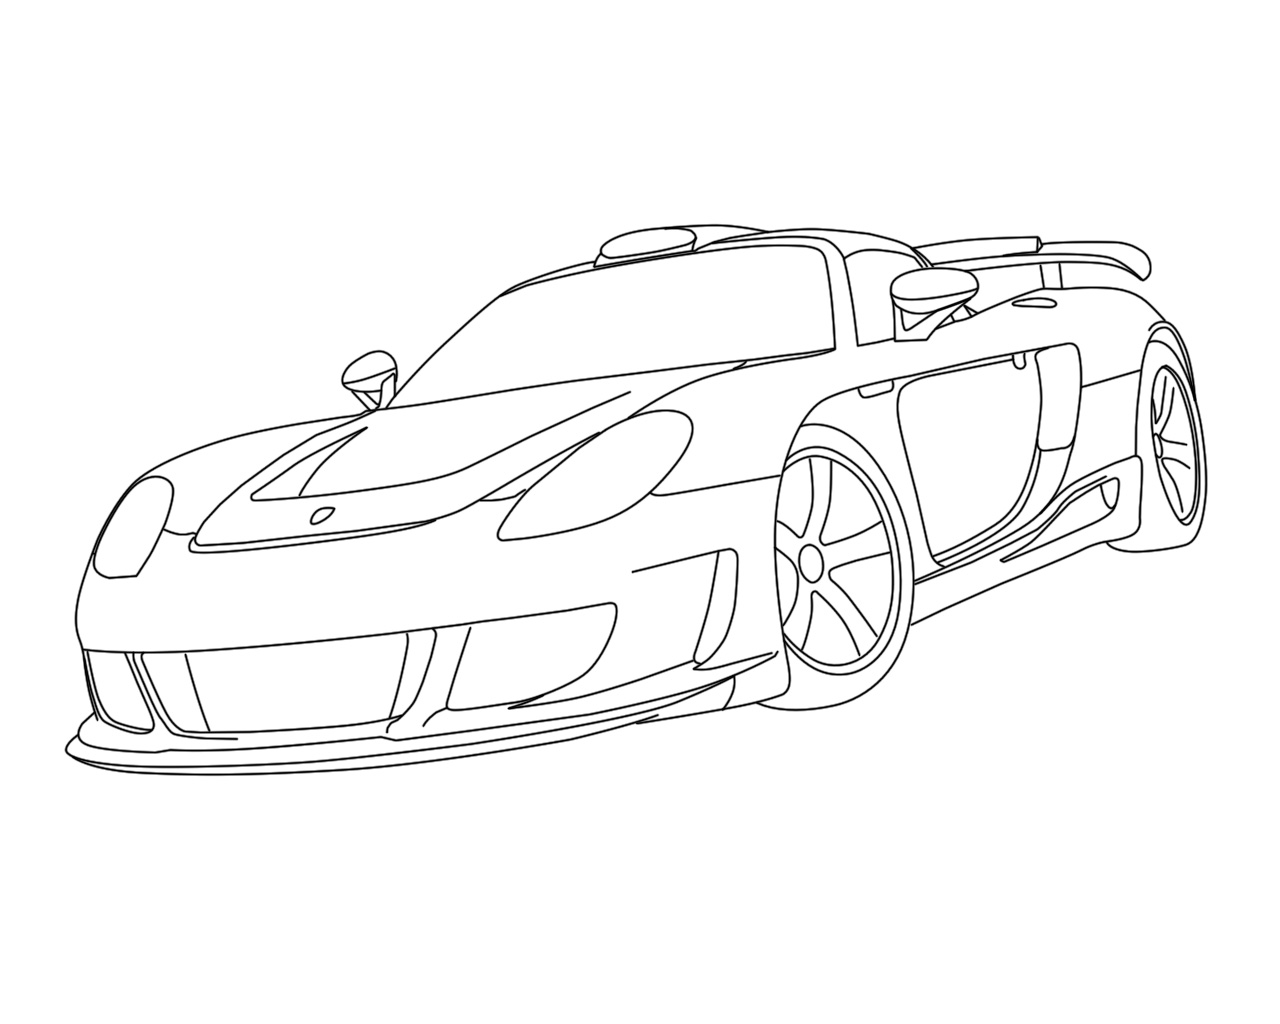 porsche 911 drawing at getdrawings  free download